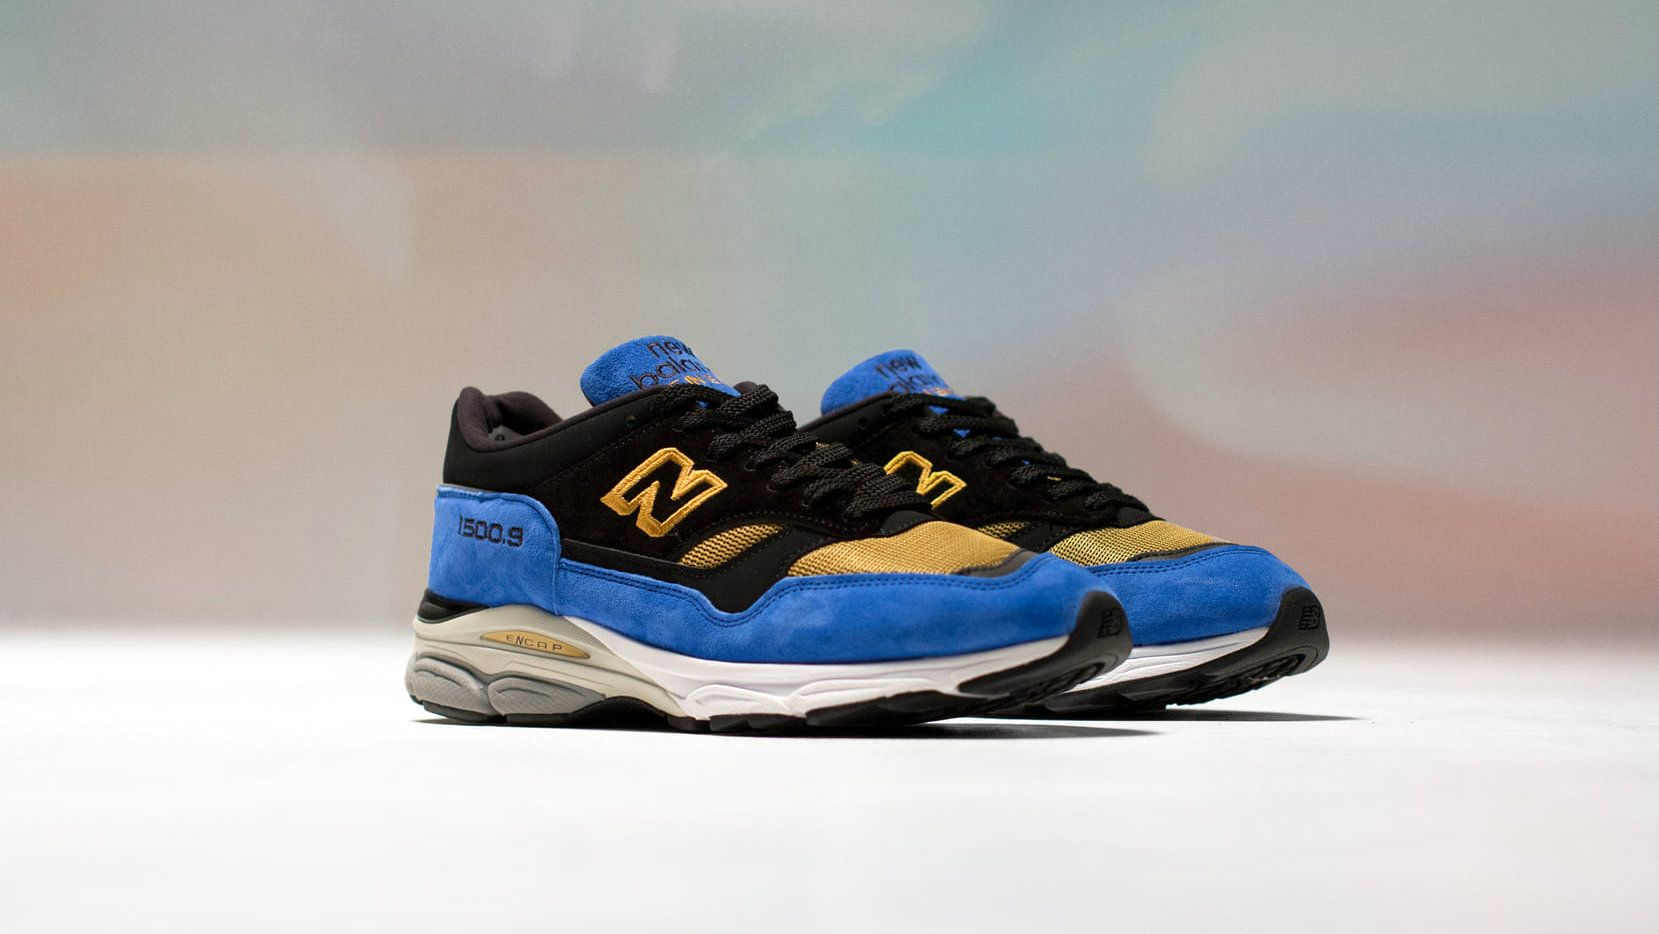 New Balance 1500.9 Caviar&Vodka Pack